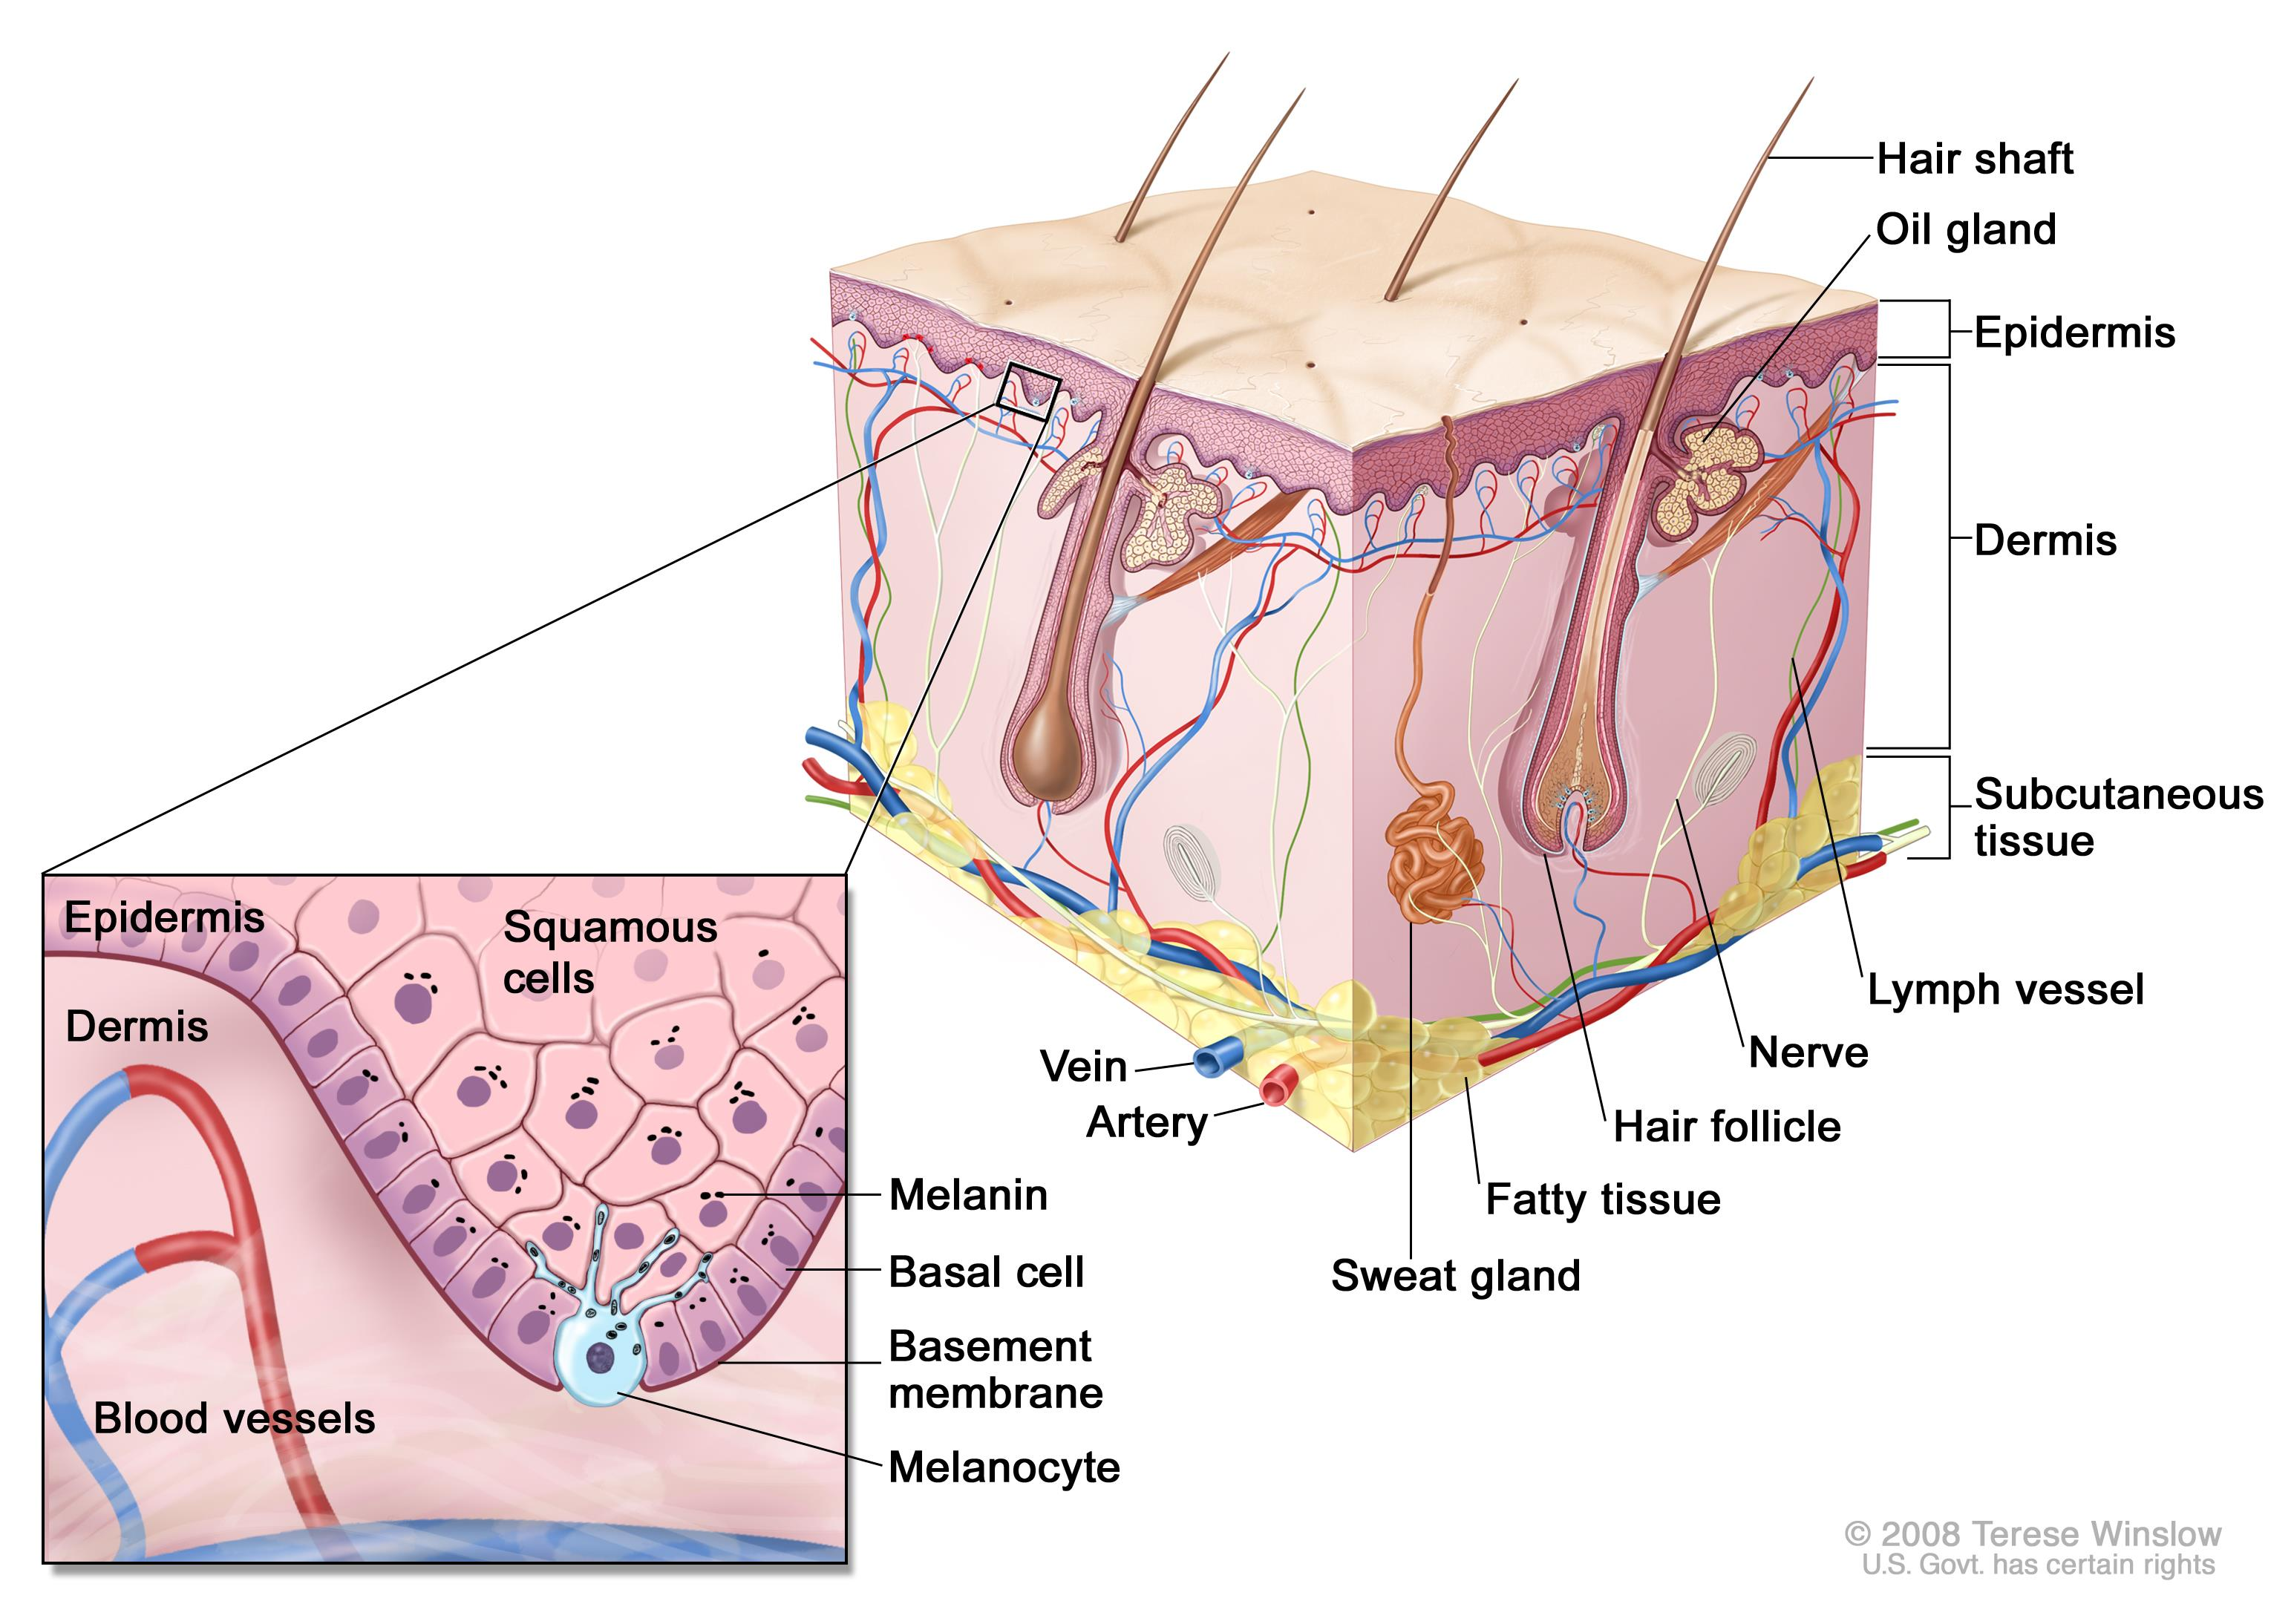 genetics of skin pdq acirc reg health professional version schematic representation of normal skin the relatively avascular epidermis houses basal cell keratinocytes and squamous epithelial keratinocytes